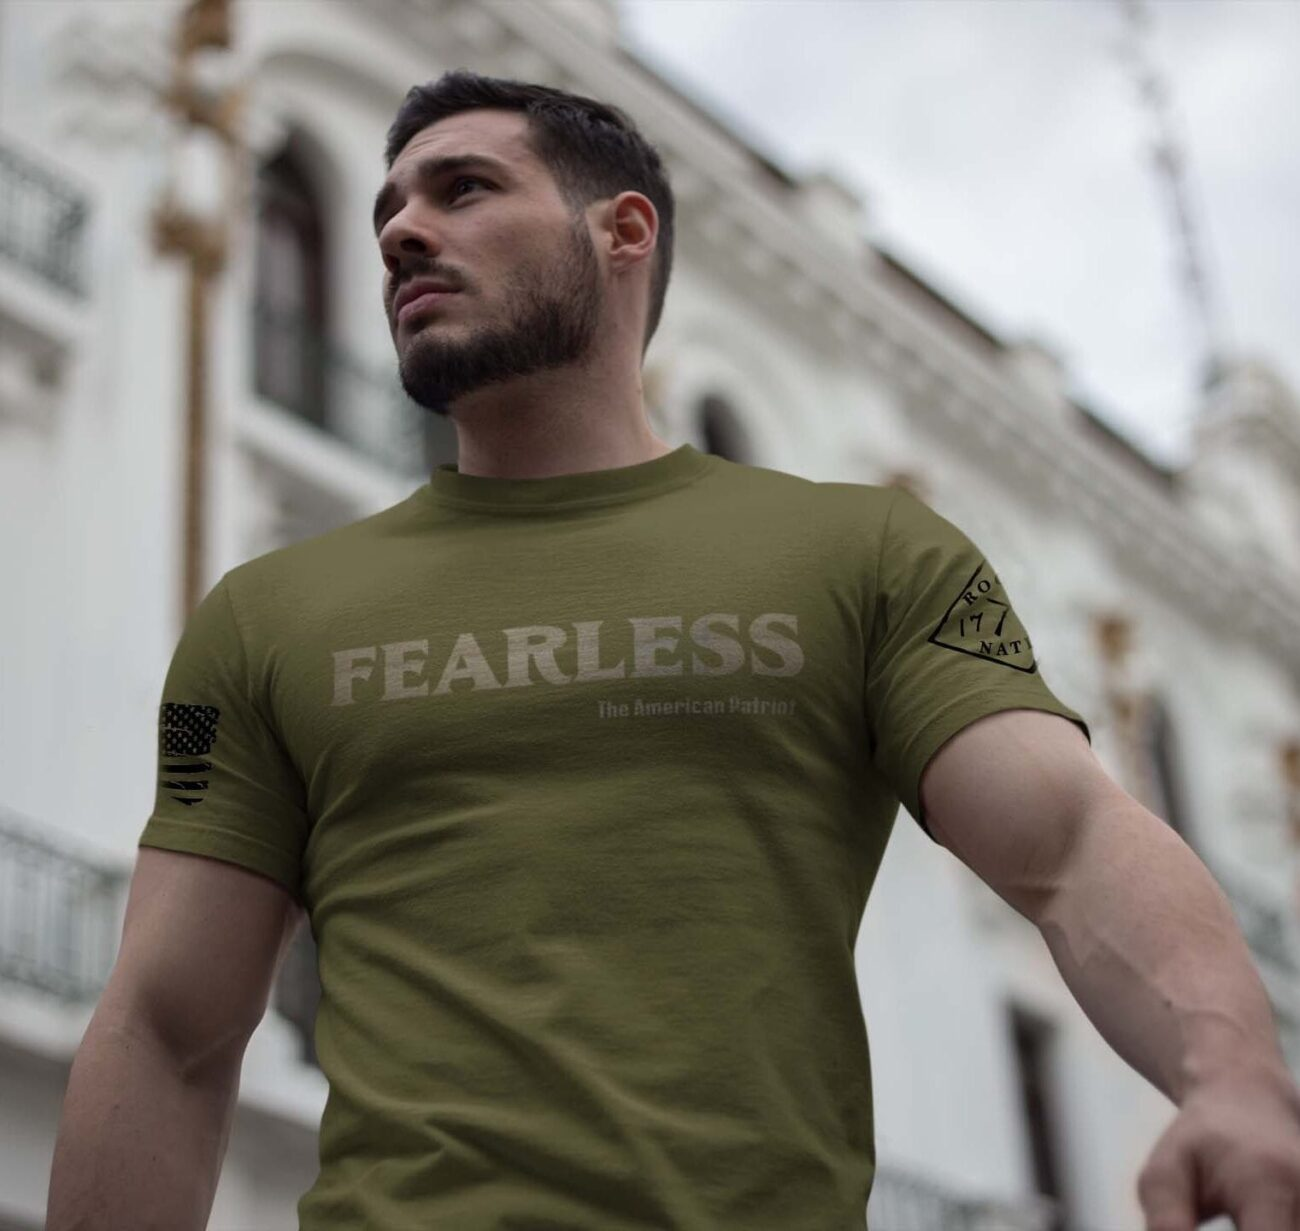 Fearless Patriot on a Men's Army T-Shirt